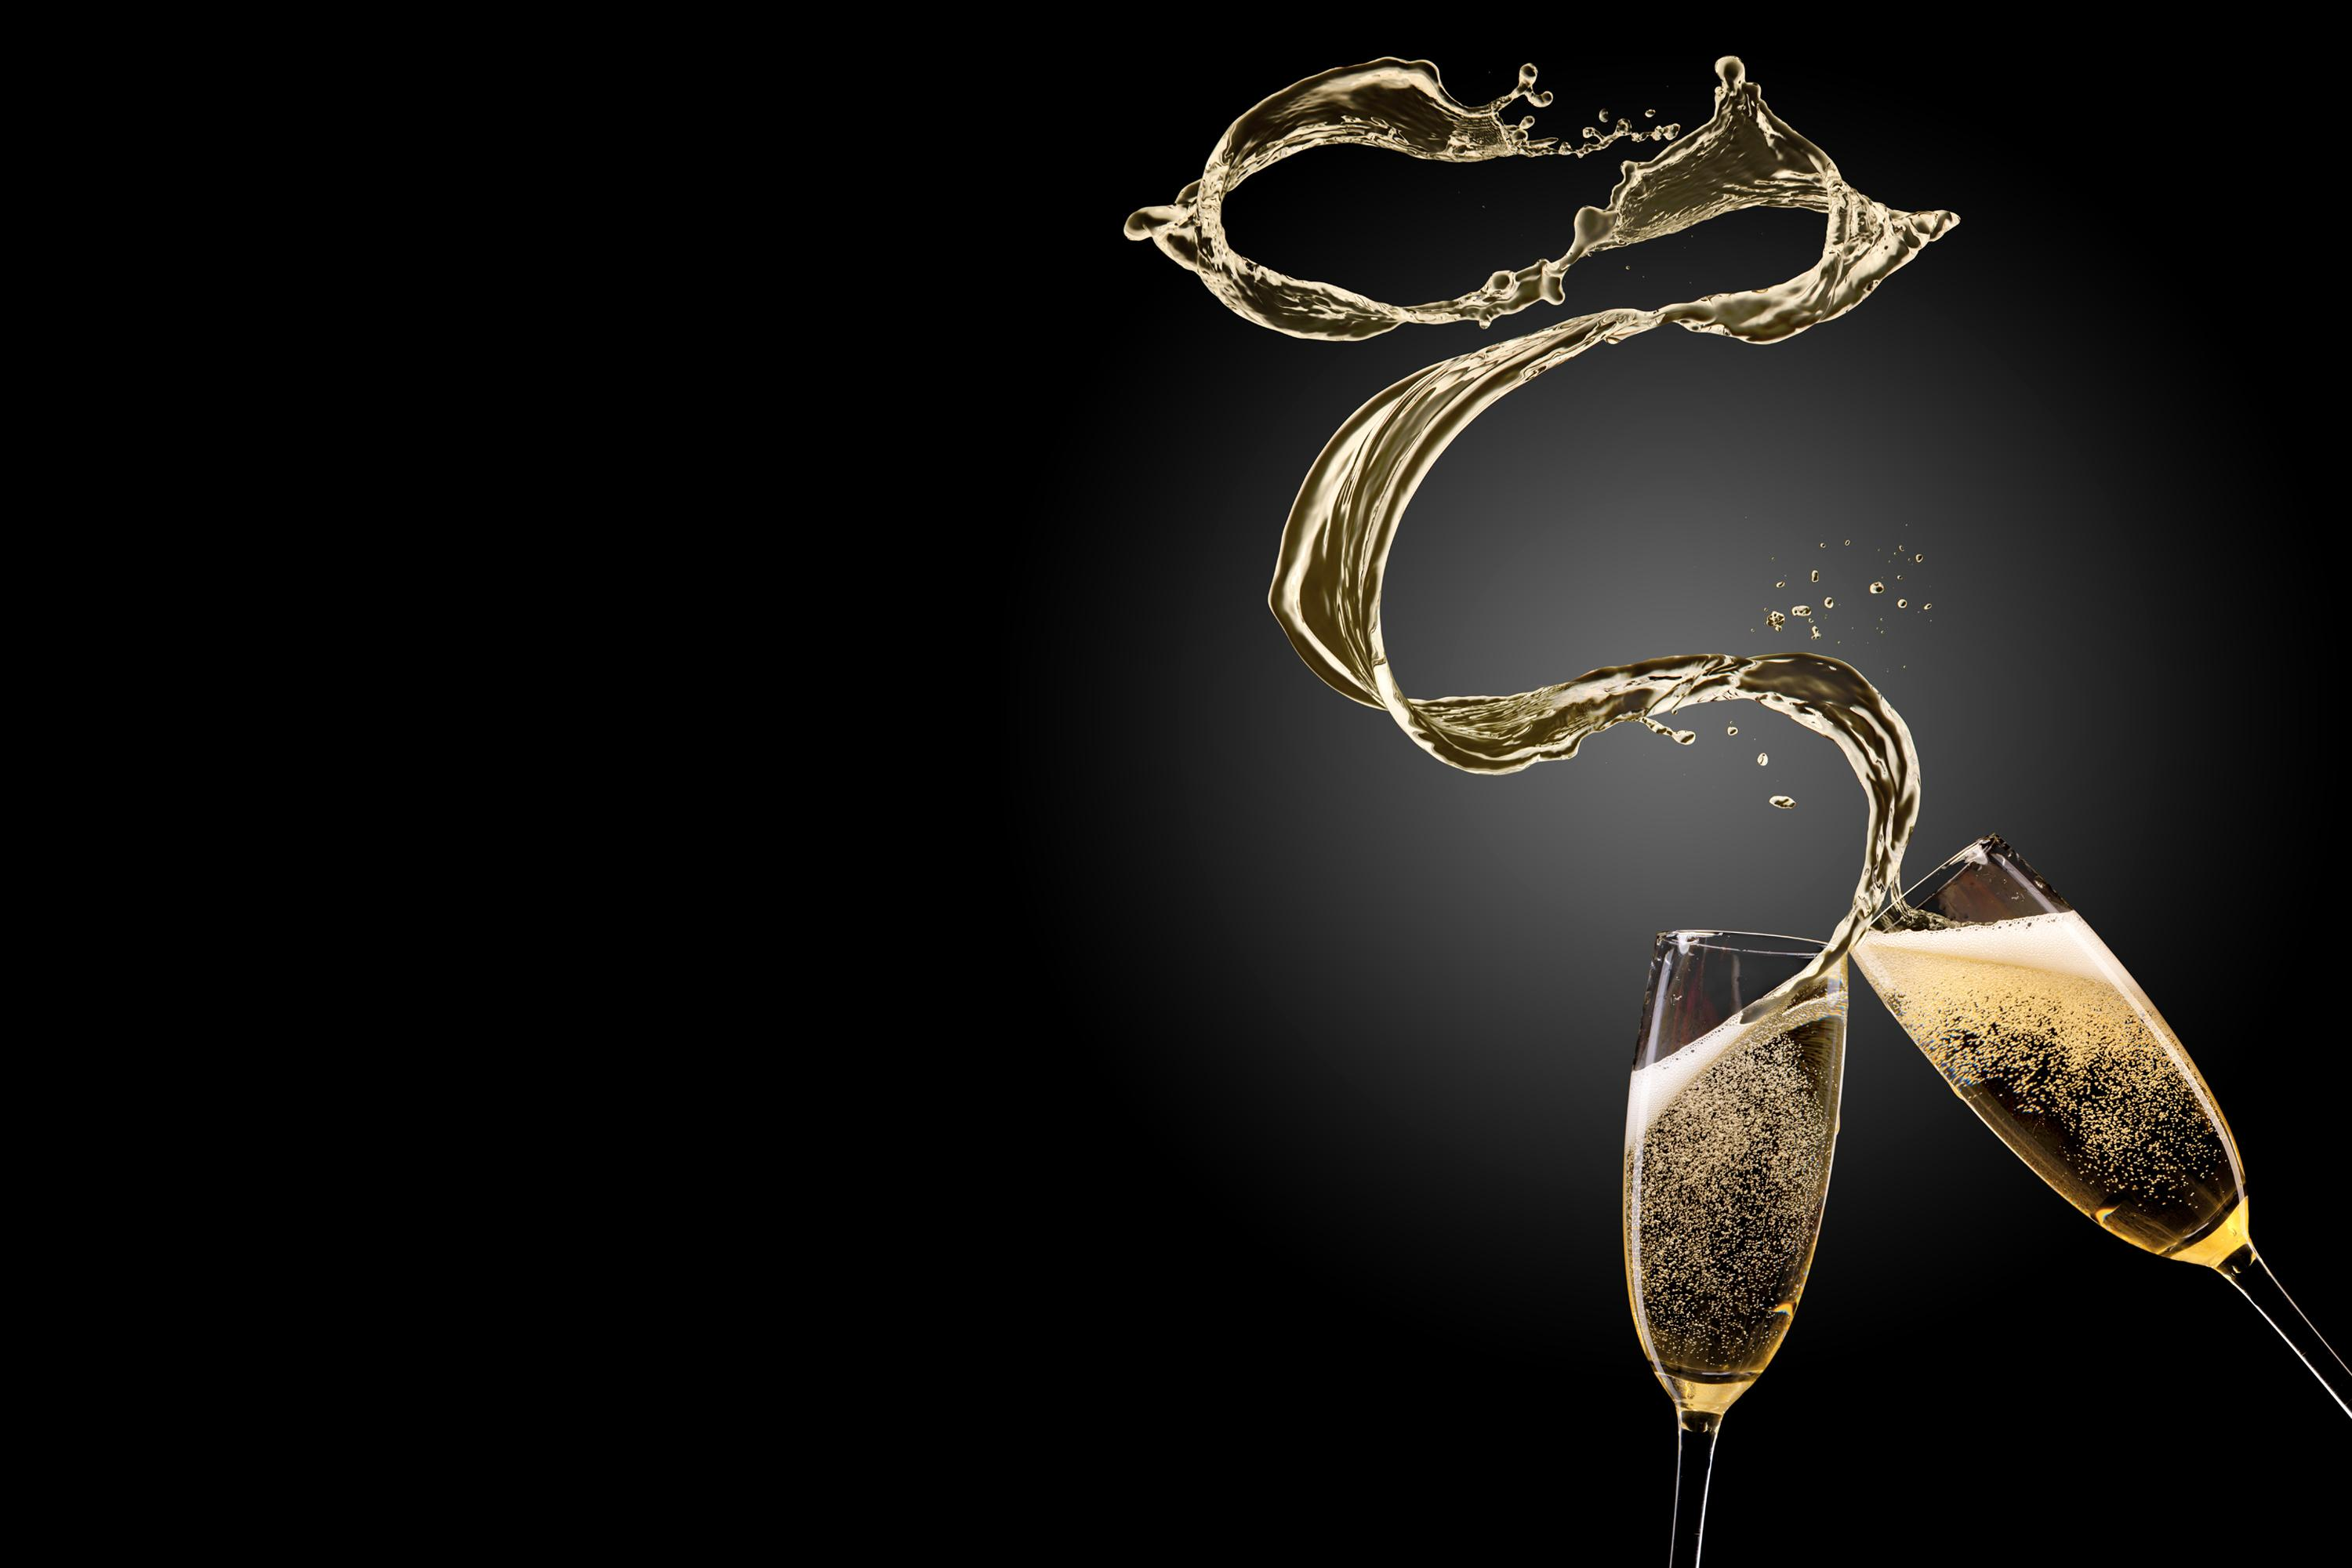 Champagne Splash Png, png collections at sccpre.cat.